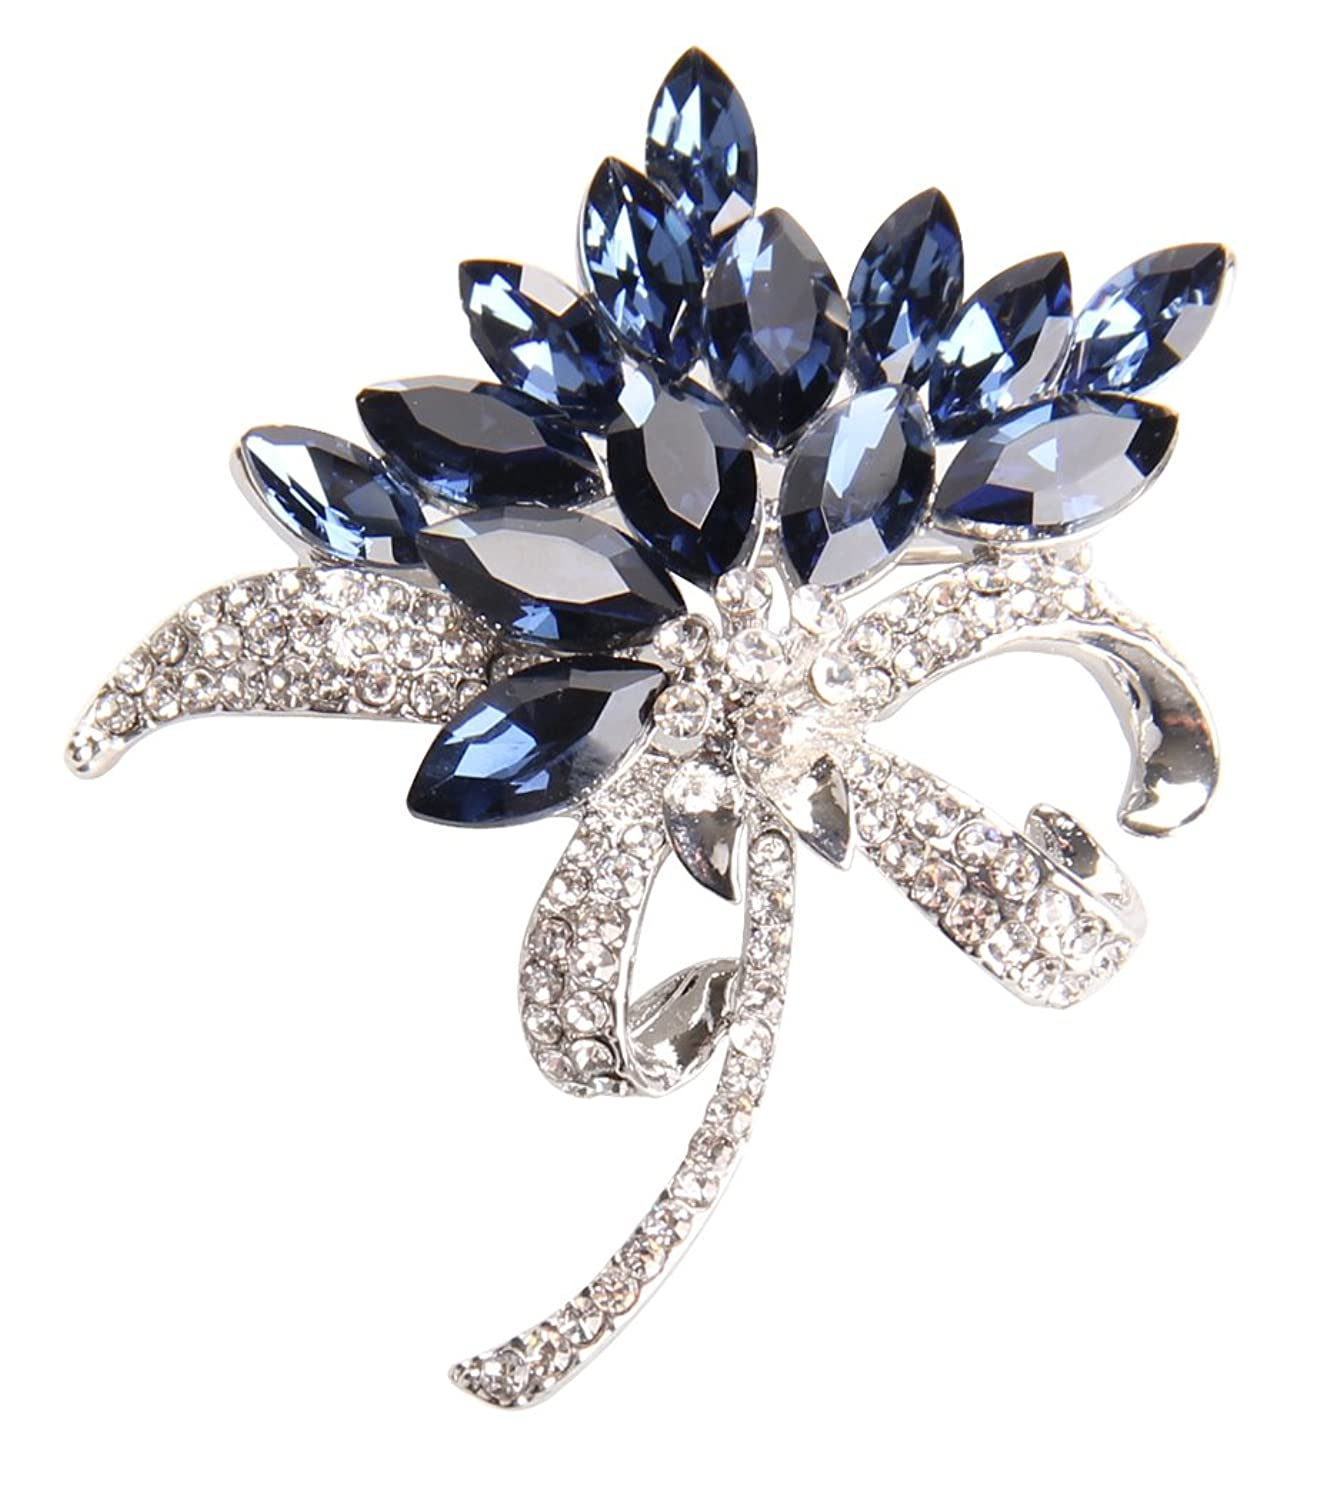 Gyn&Joy Women's Orchid Flower Crystal Bling Brooch Pin Jewelry BZ002